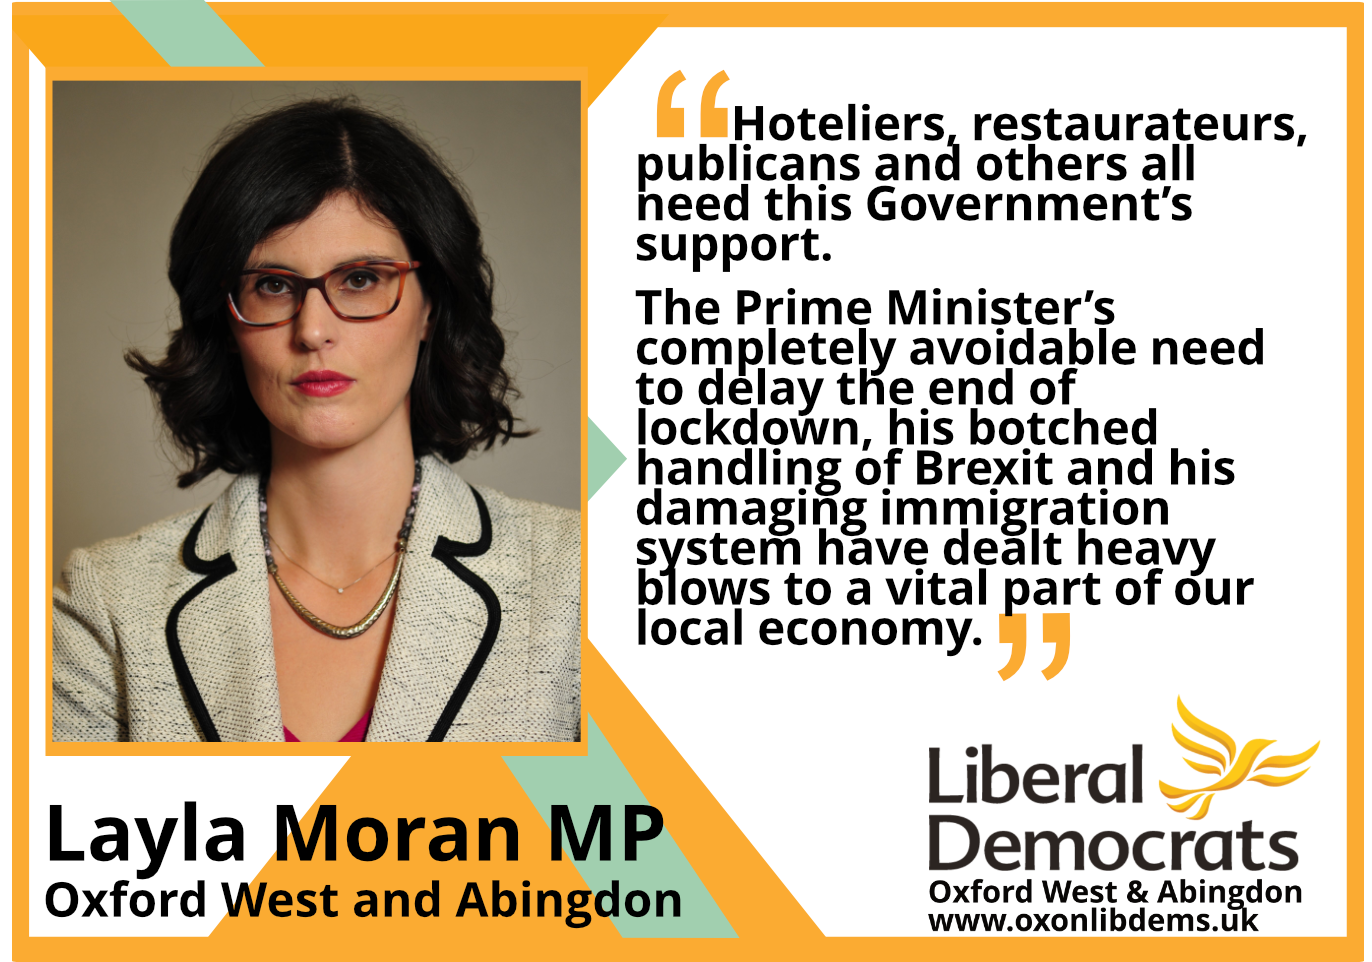 key_ Hoteliers, restaurateurs, publicans and others all need this Government's support. The Prime Minister's completely avoidable need to delay the end of lockdown, his botched handling of Brexit and his damaging immigration system have dealt heavy blows to a vital part of our local economy.